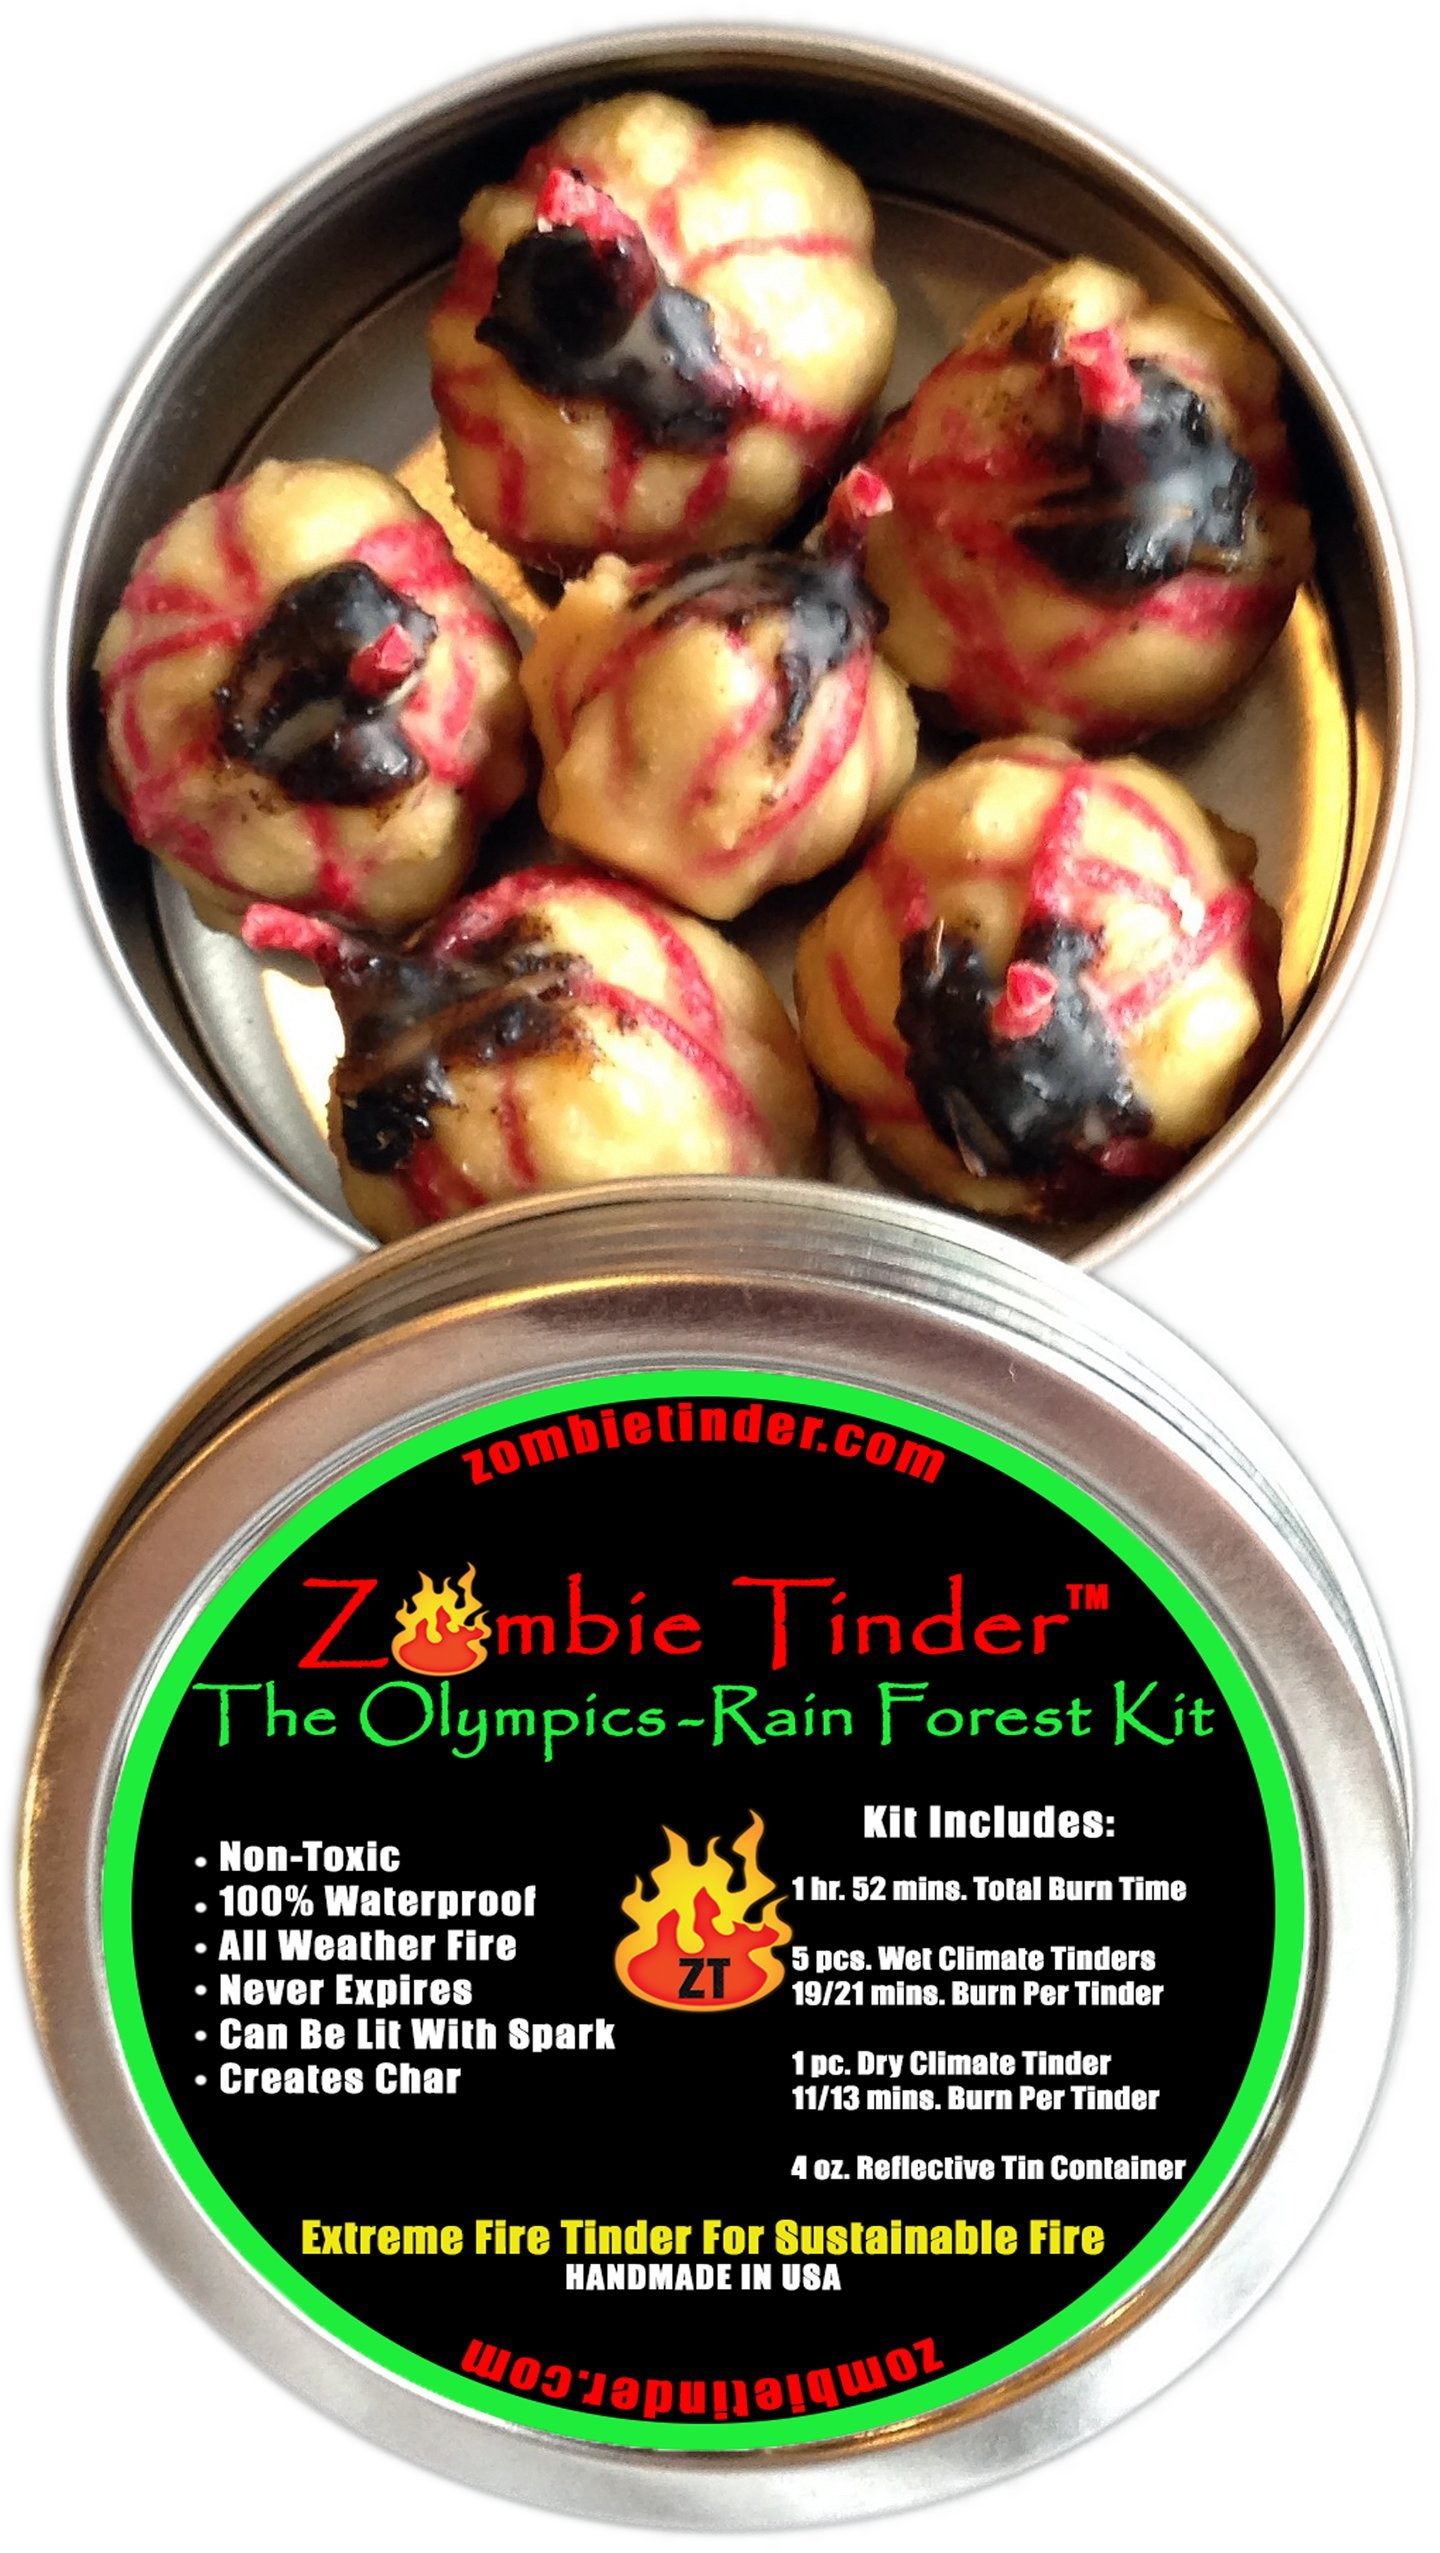 Zombie Tinder The Olympics: Rain Forest Kit - Extreme Fire Starter & Tinder - Over 112 Minutes of Total Burn Time - Easy Light Wick - Spark Light by Zombie Tinder